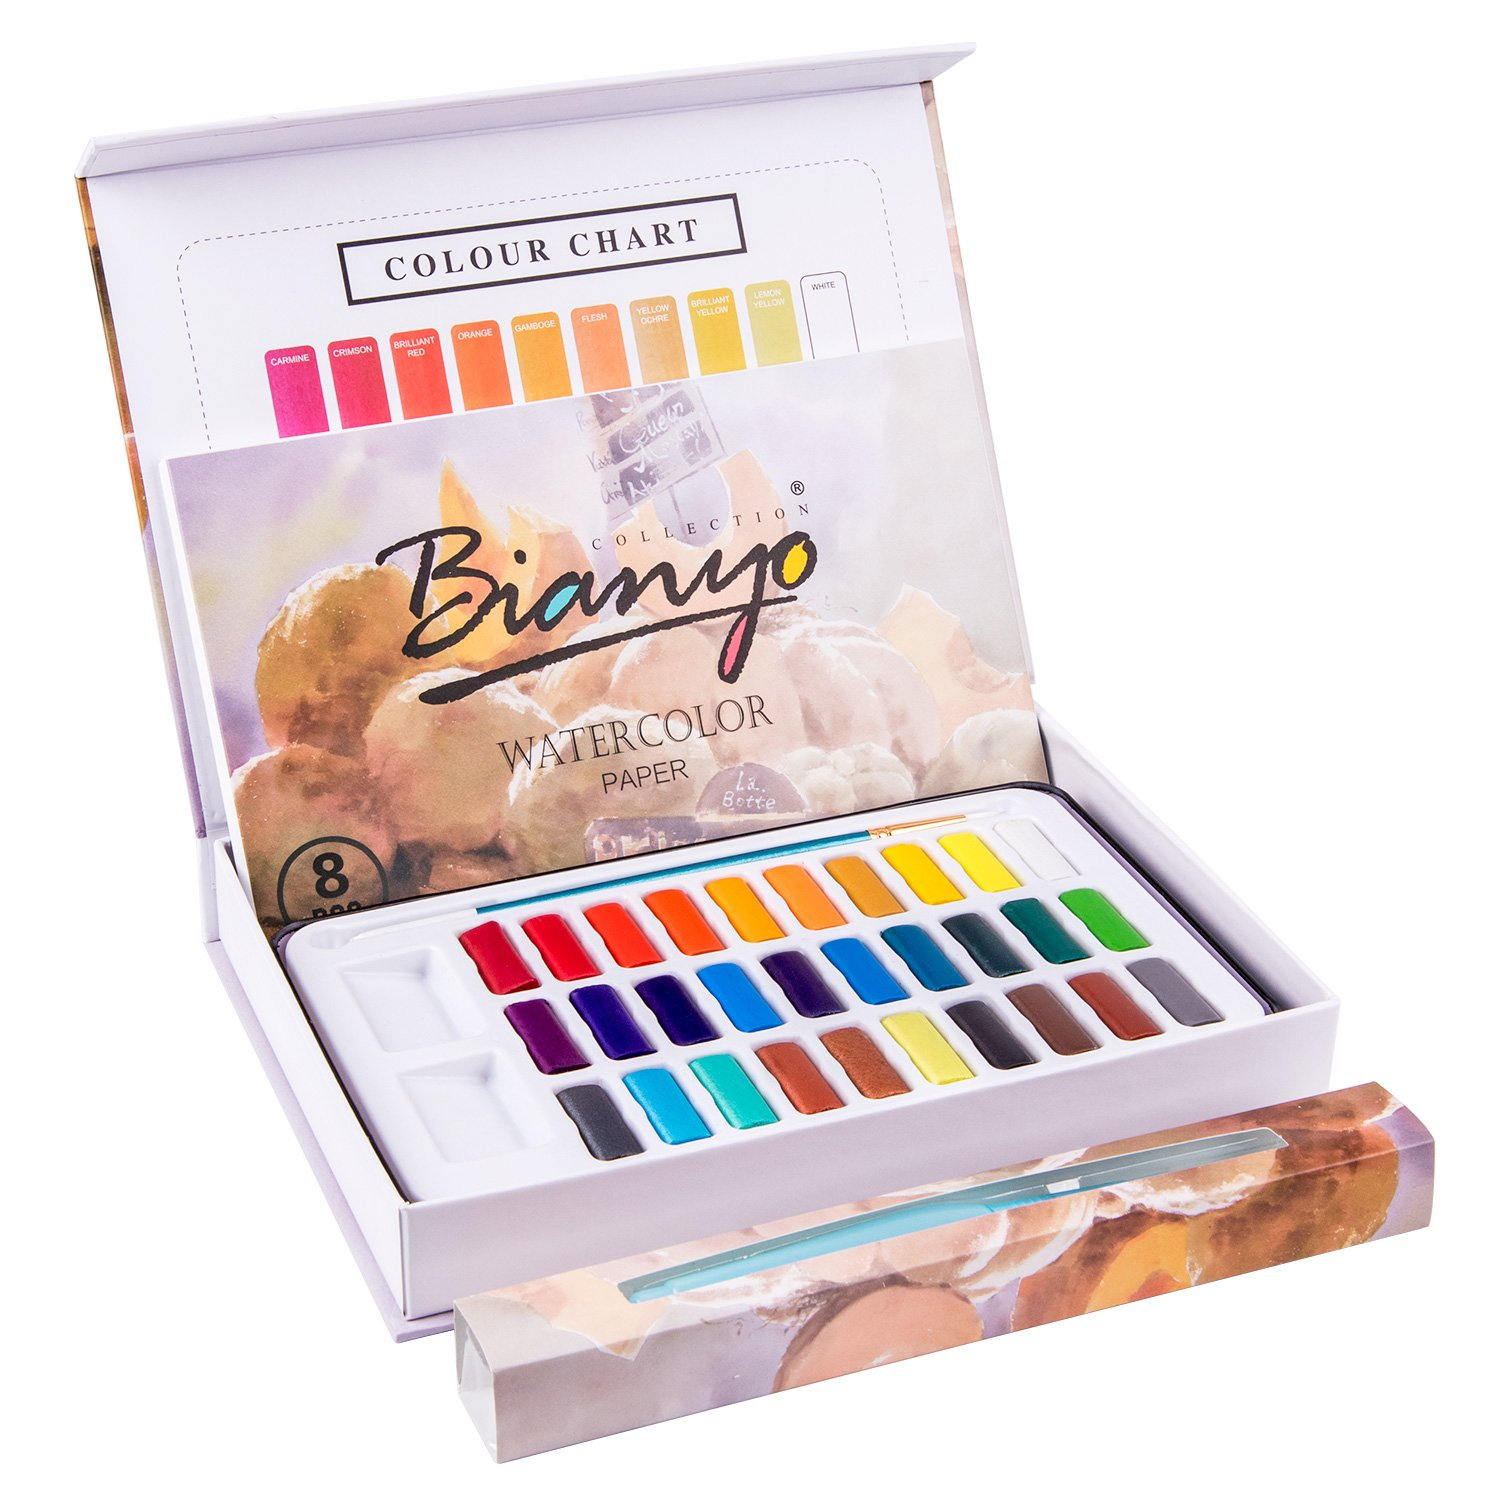 Watercolor artist magazine customer service - Amazon Com Bianyo Watercolor Set Professional Art Paint Set With Paper Brushes For Artist Painting